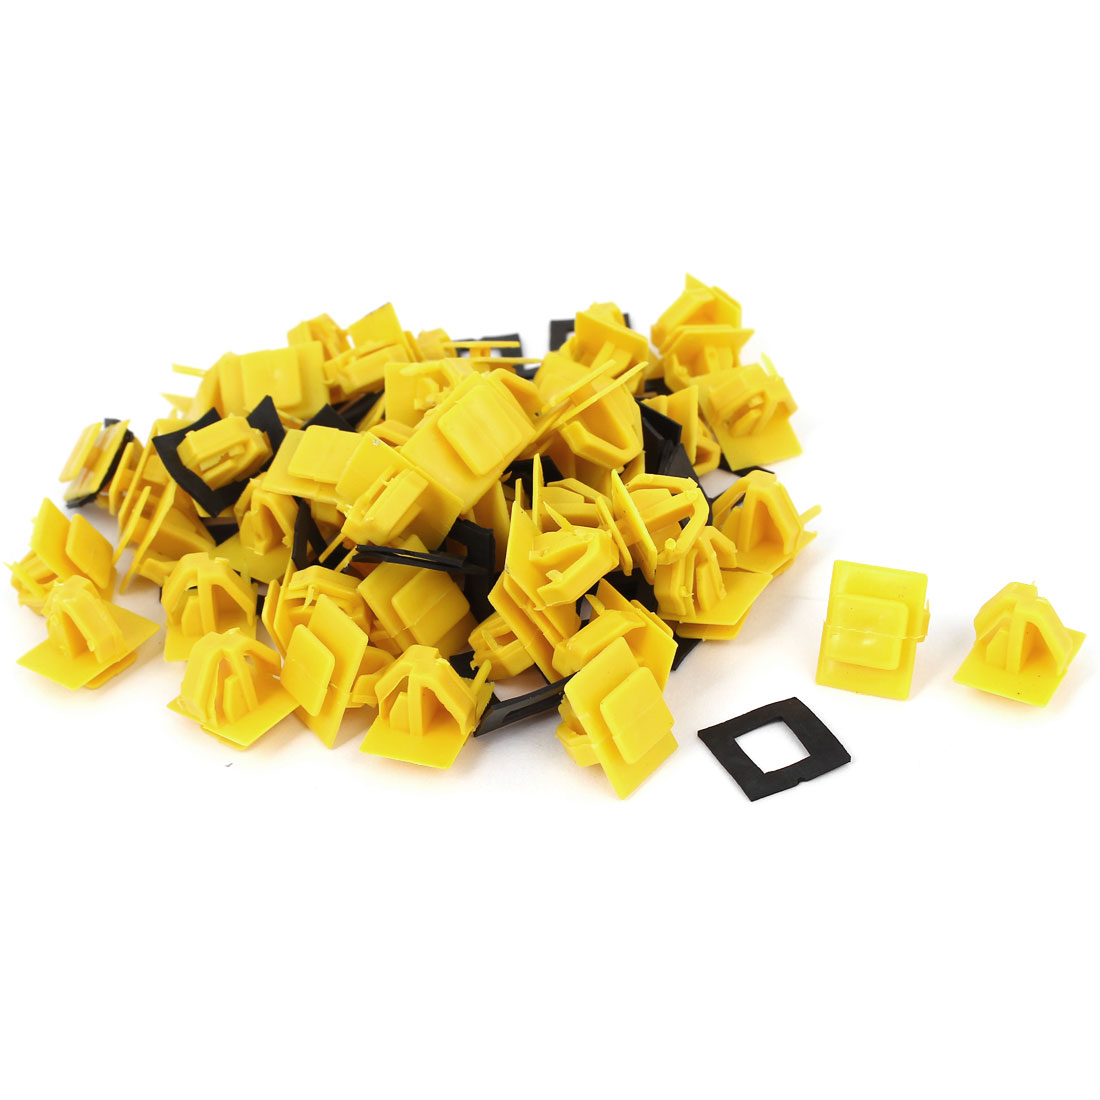 50 Pcs Orange Plastic Rivet Trim Fastener Moulding Clips 11mm x 15mm x 15mm